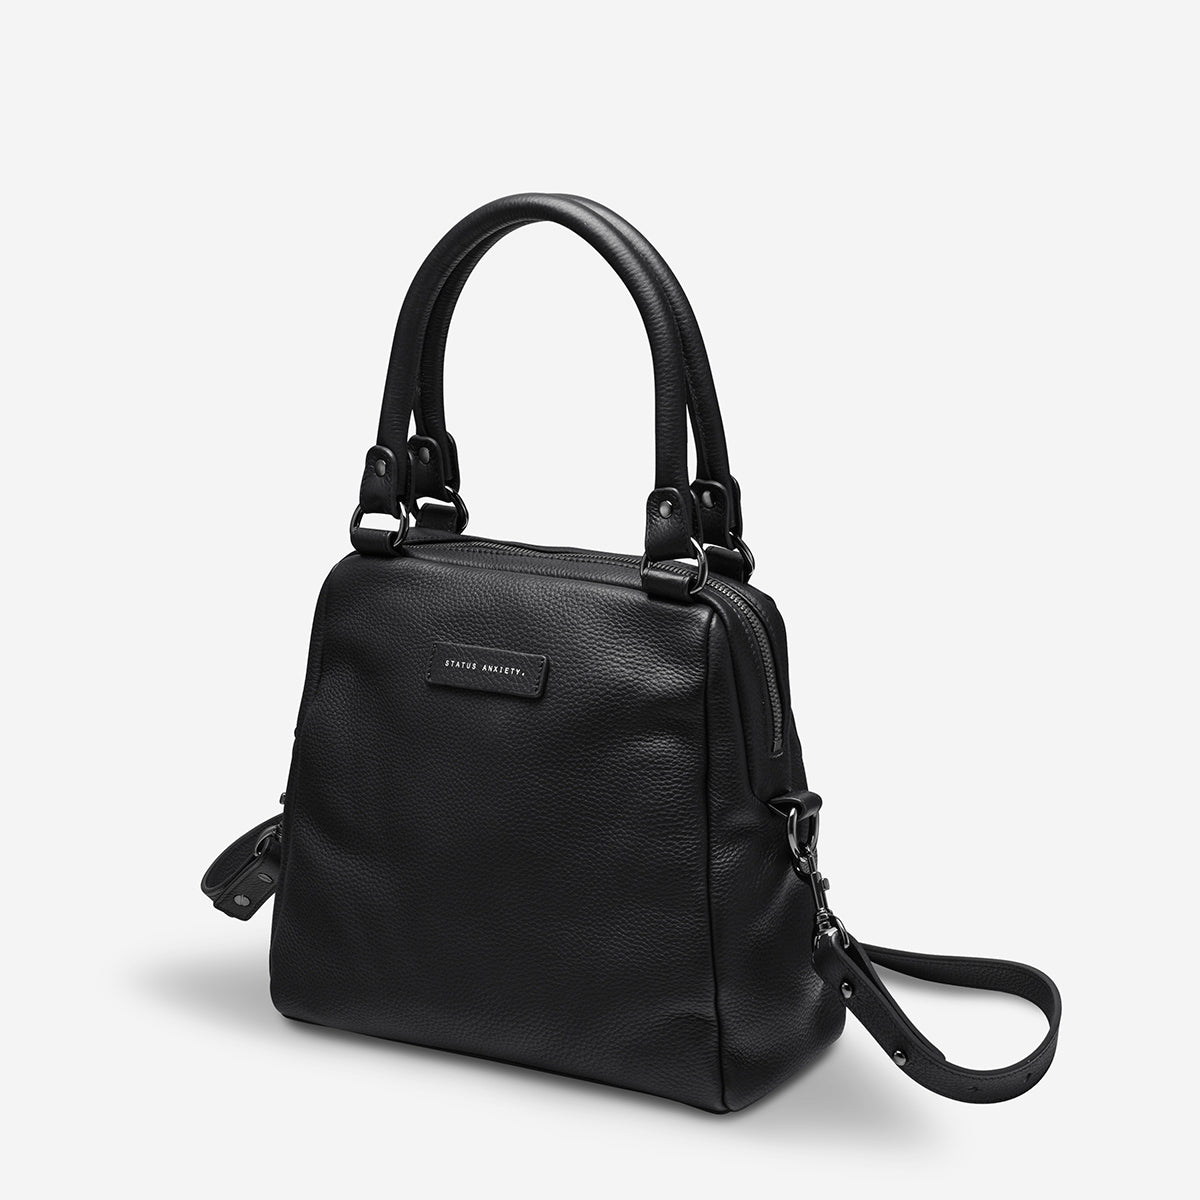 Status Anxiety Last Mountains Women's Leather Handbag - Black